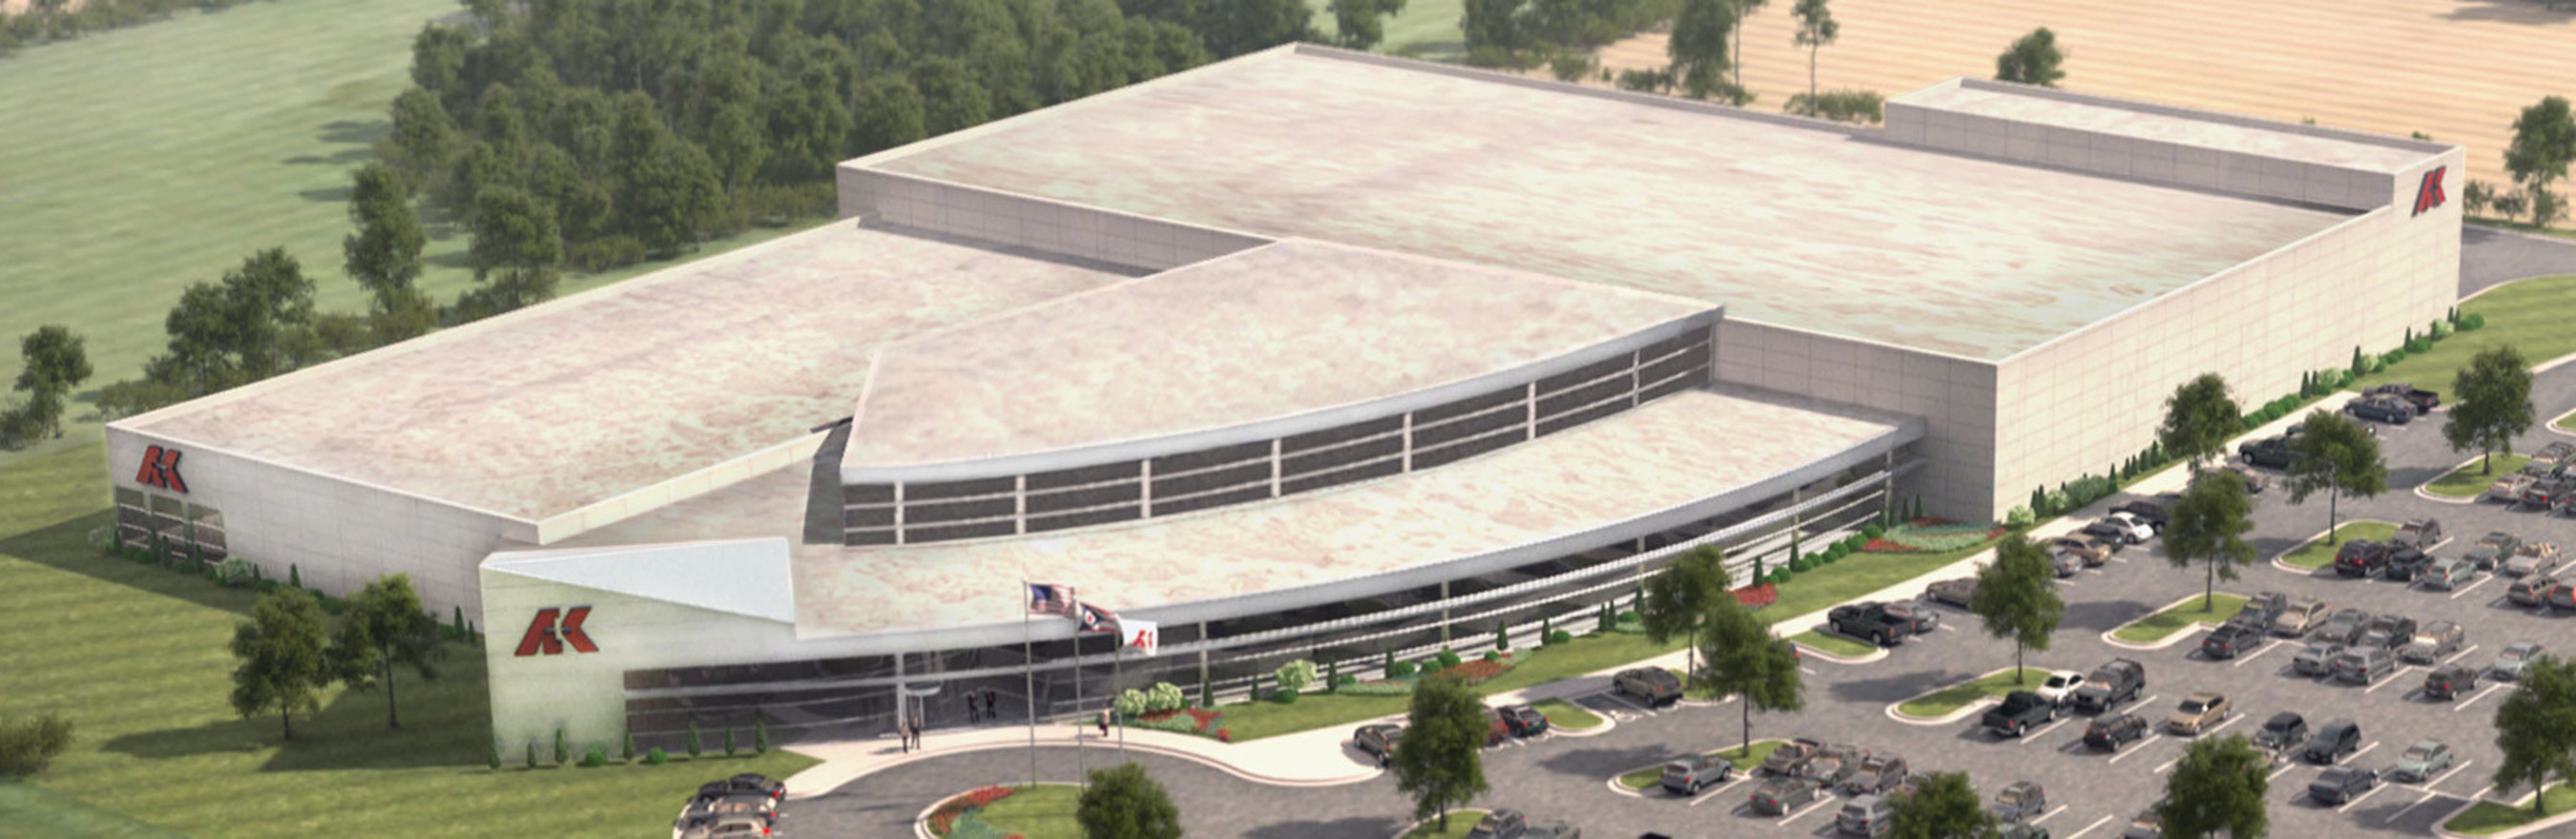 Rendering of AK Steel's new Research and Innovation Center to be built in Middletown, Ohio.